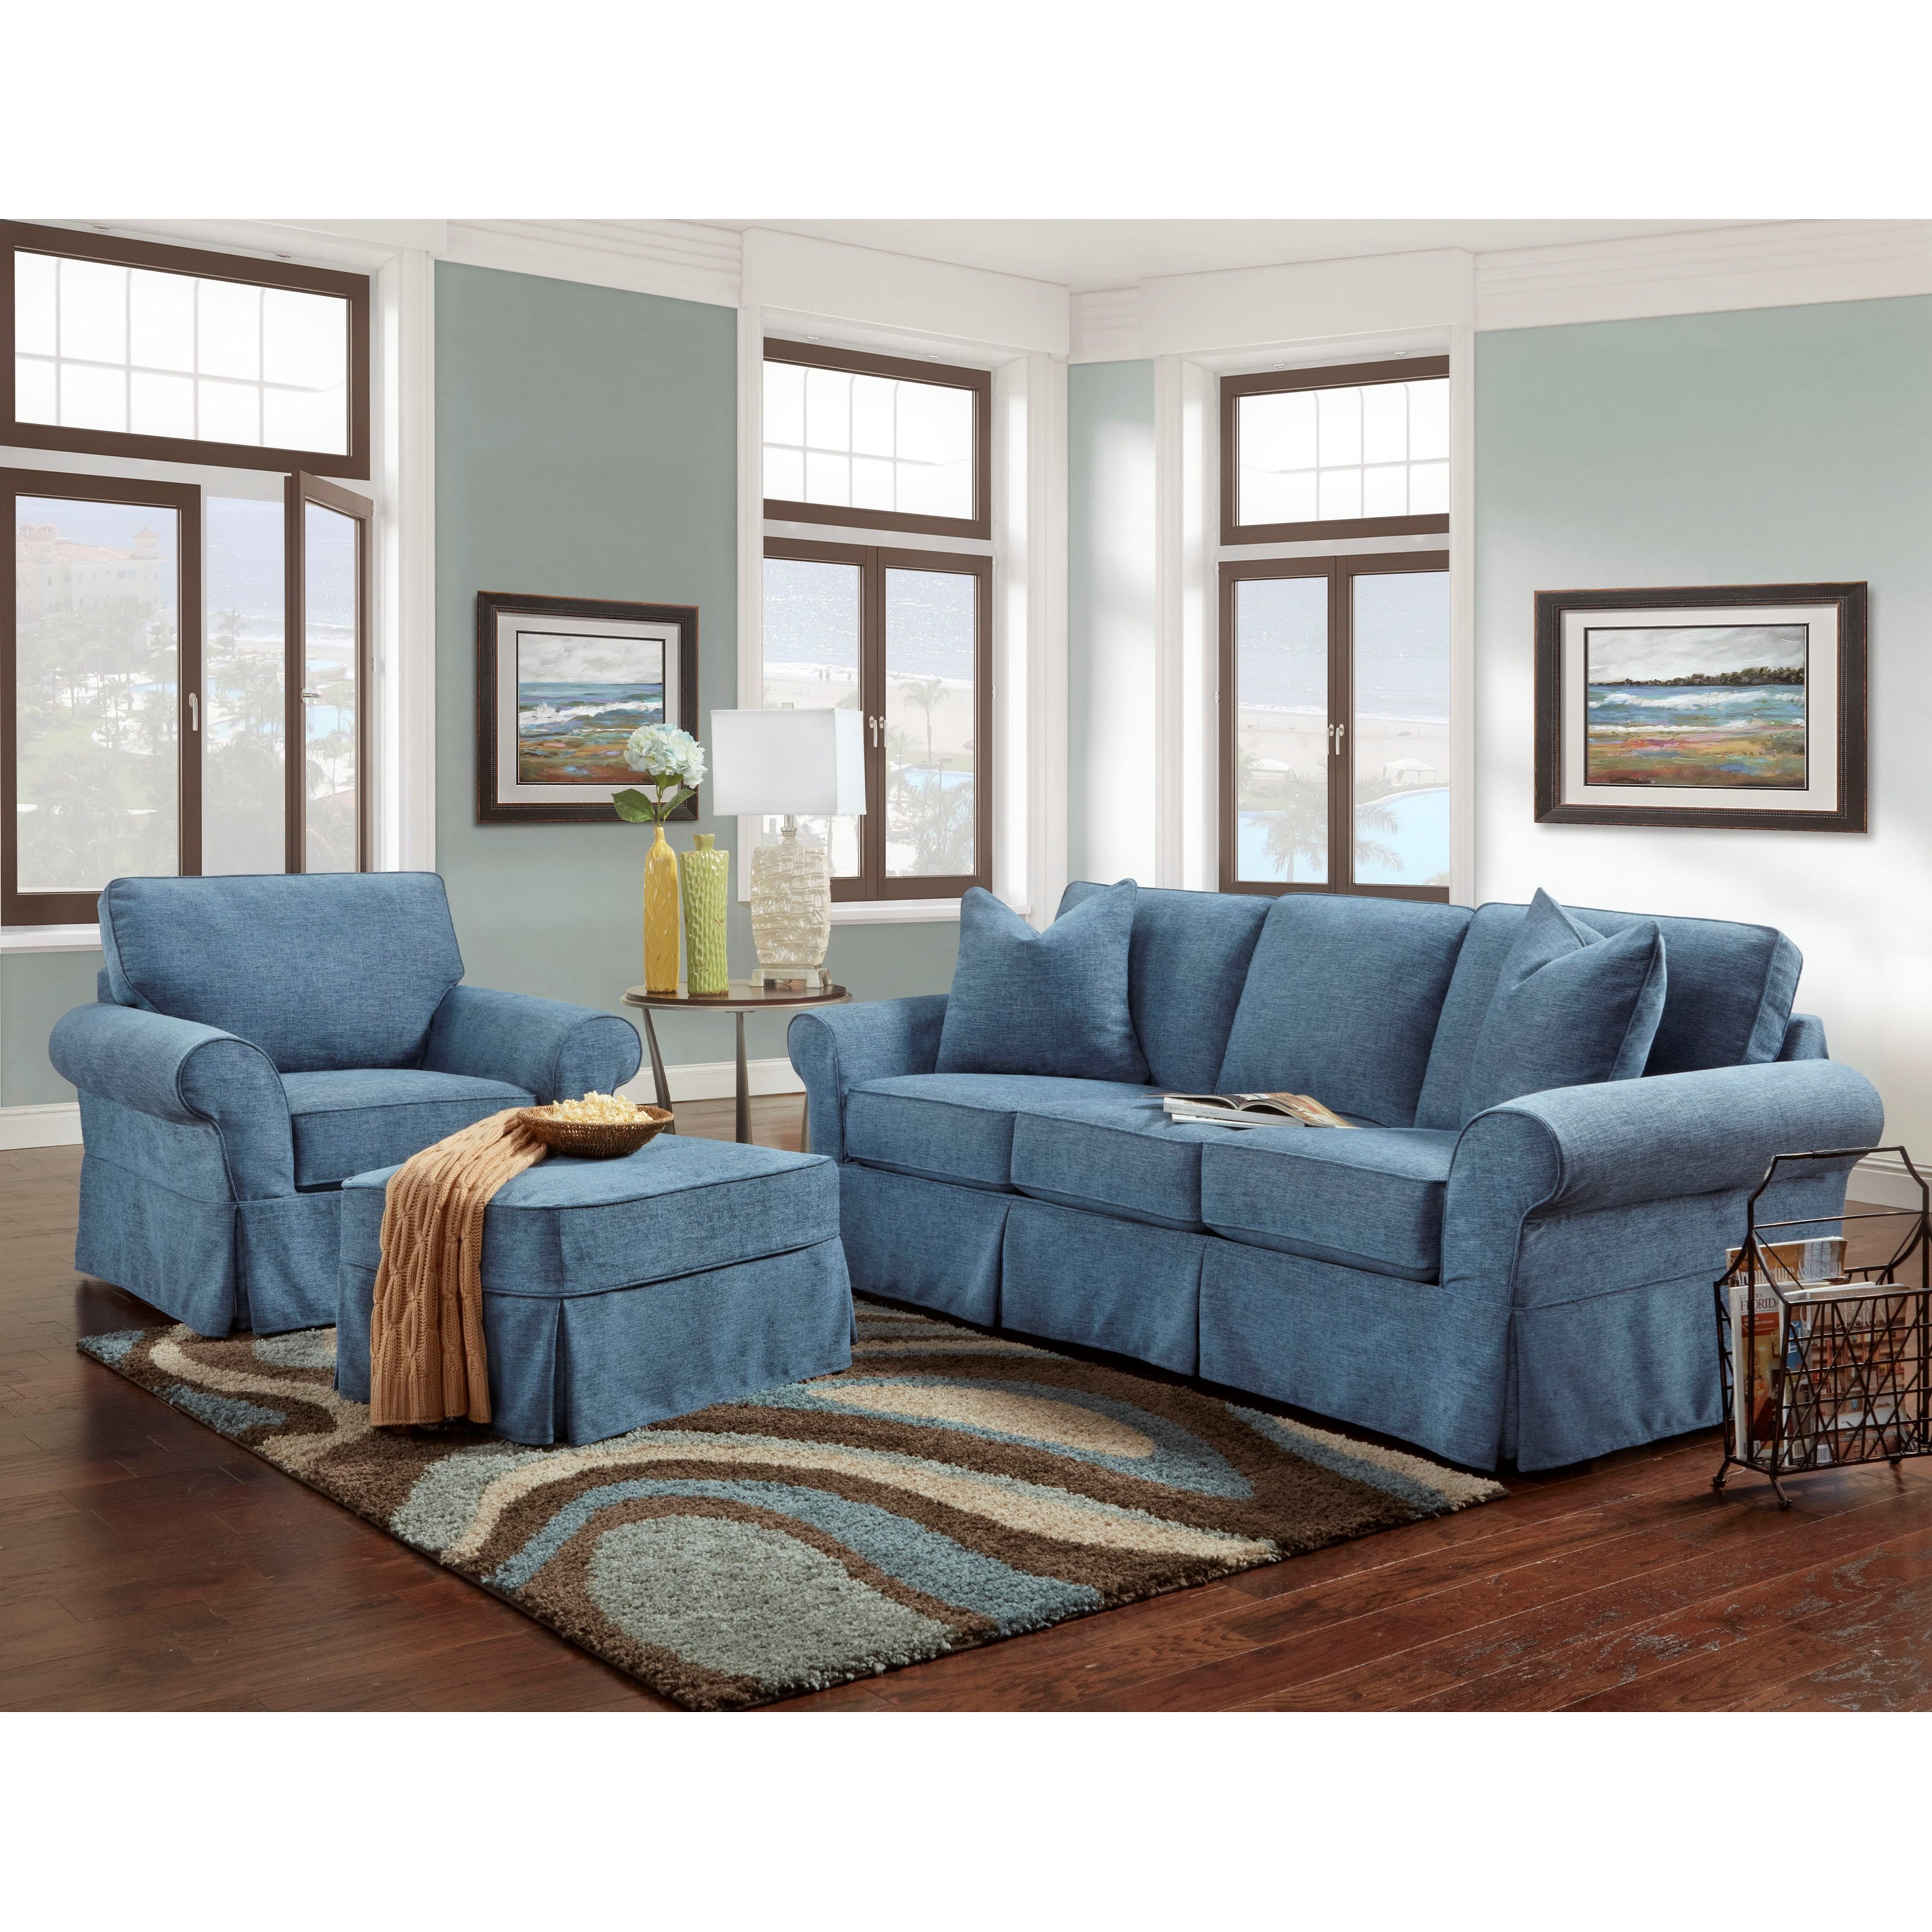 crawford chaise photos showing sectional couch denim with hydra viewing of sofa slipcovers piece living bauhaus zuo room slipcover red sofas cindy raf sleeper